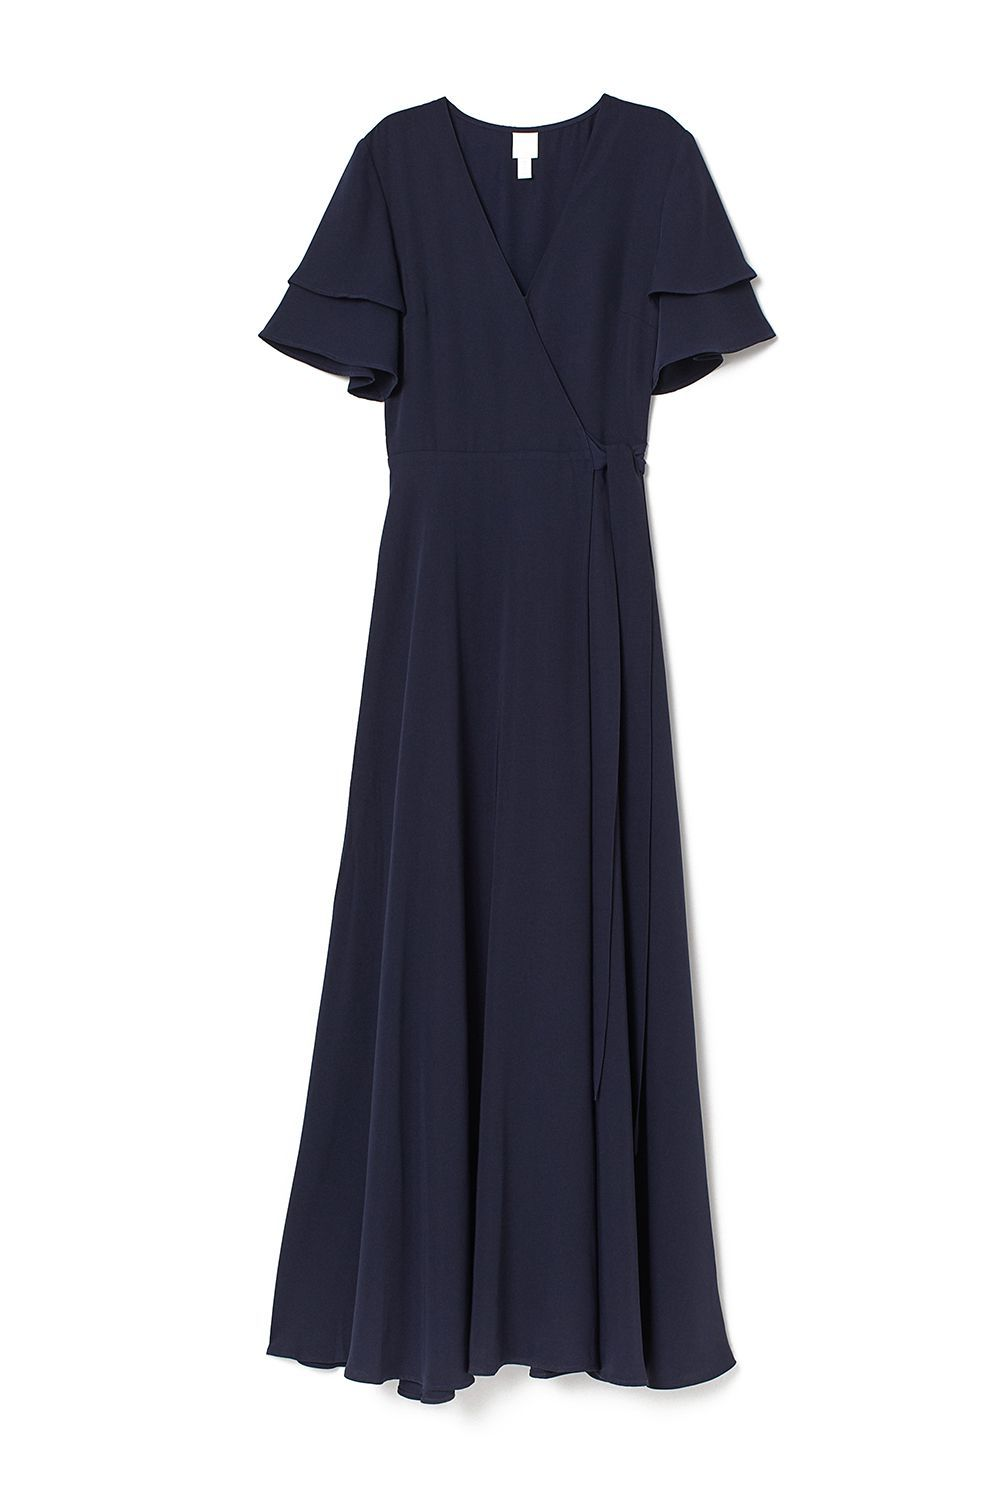 Best for Re-Wearing Wrap Dress H&M hm.com $59.99 SHOP IT Navy, the alternative flattering color to your go-to little black dress. Its classic hue and silhouette mean that it will work for the array of dress codes on your docket: garden, cocktail, black-tie optional—you name it!